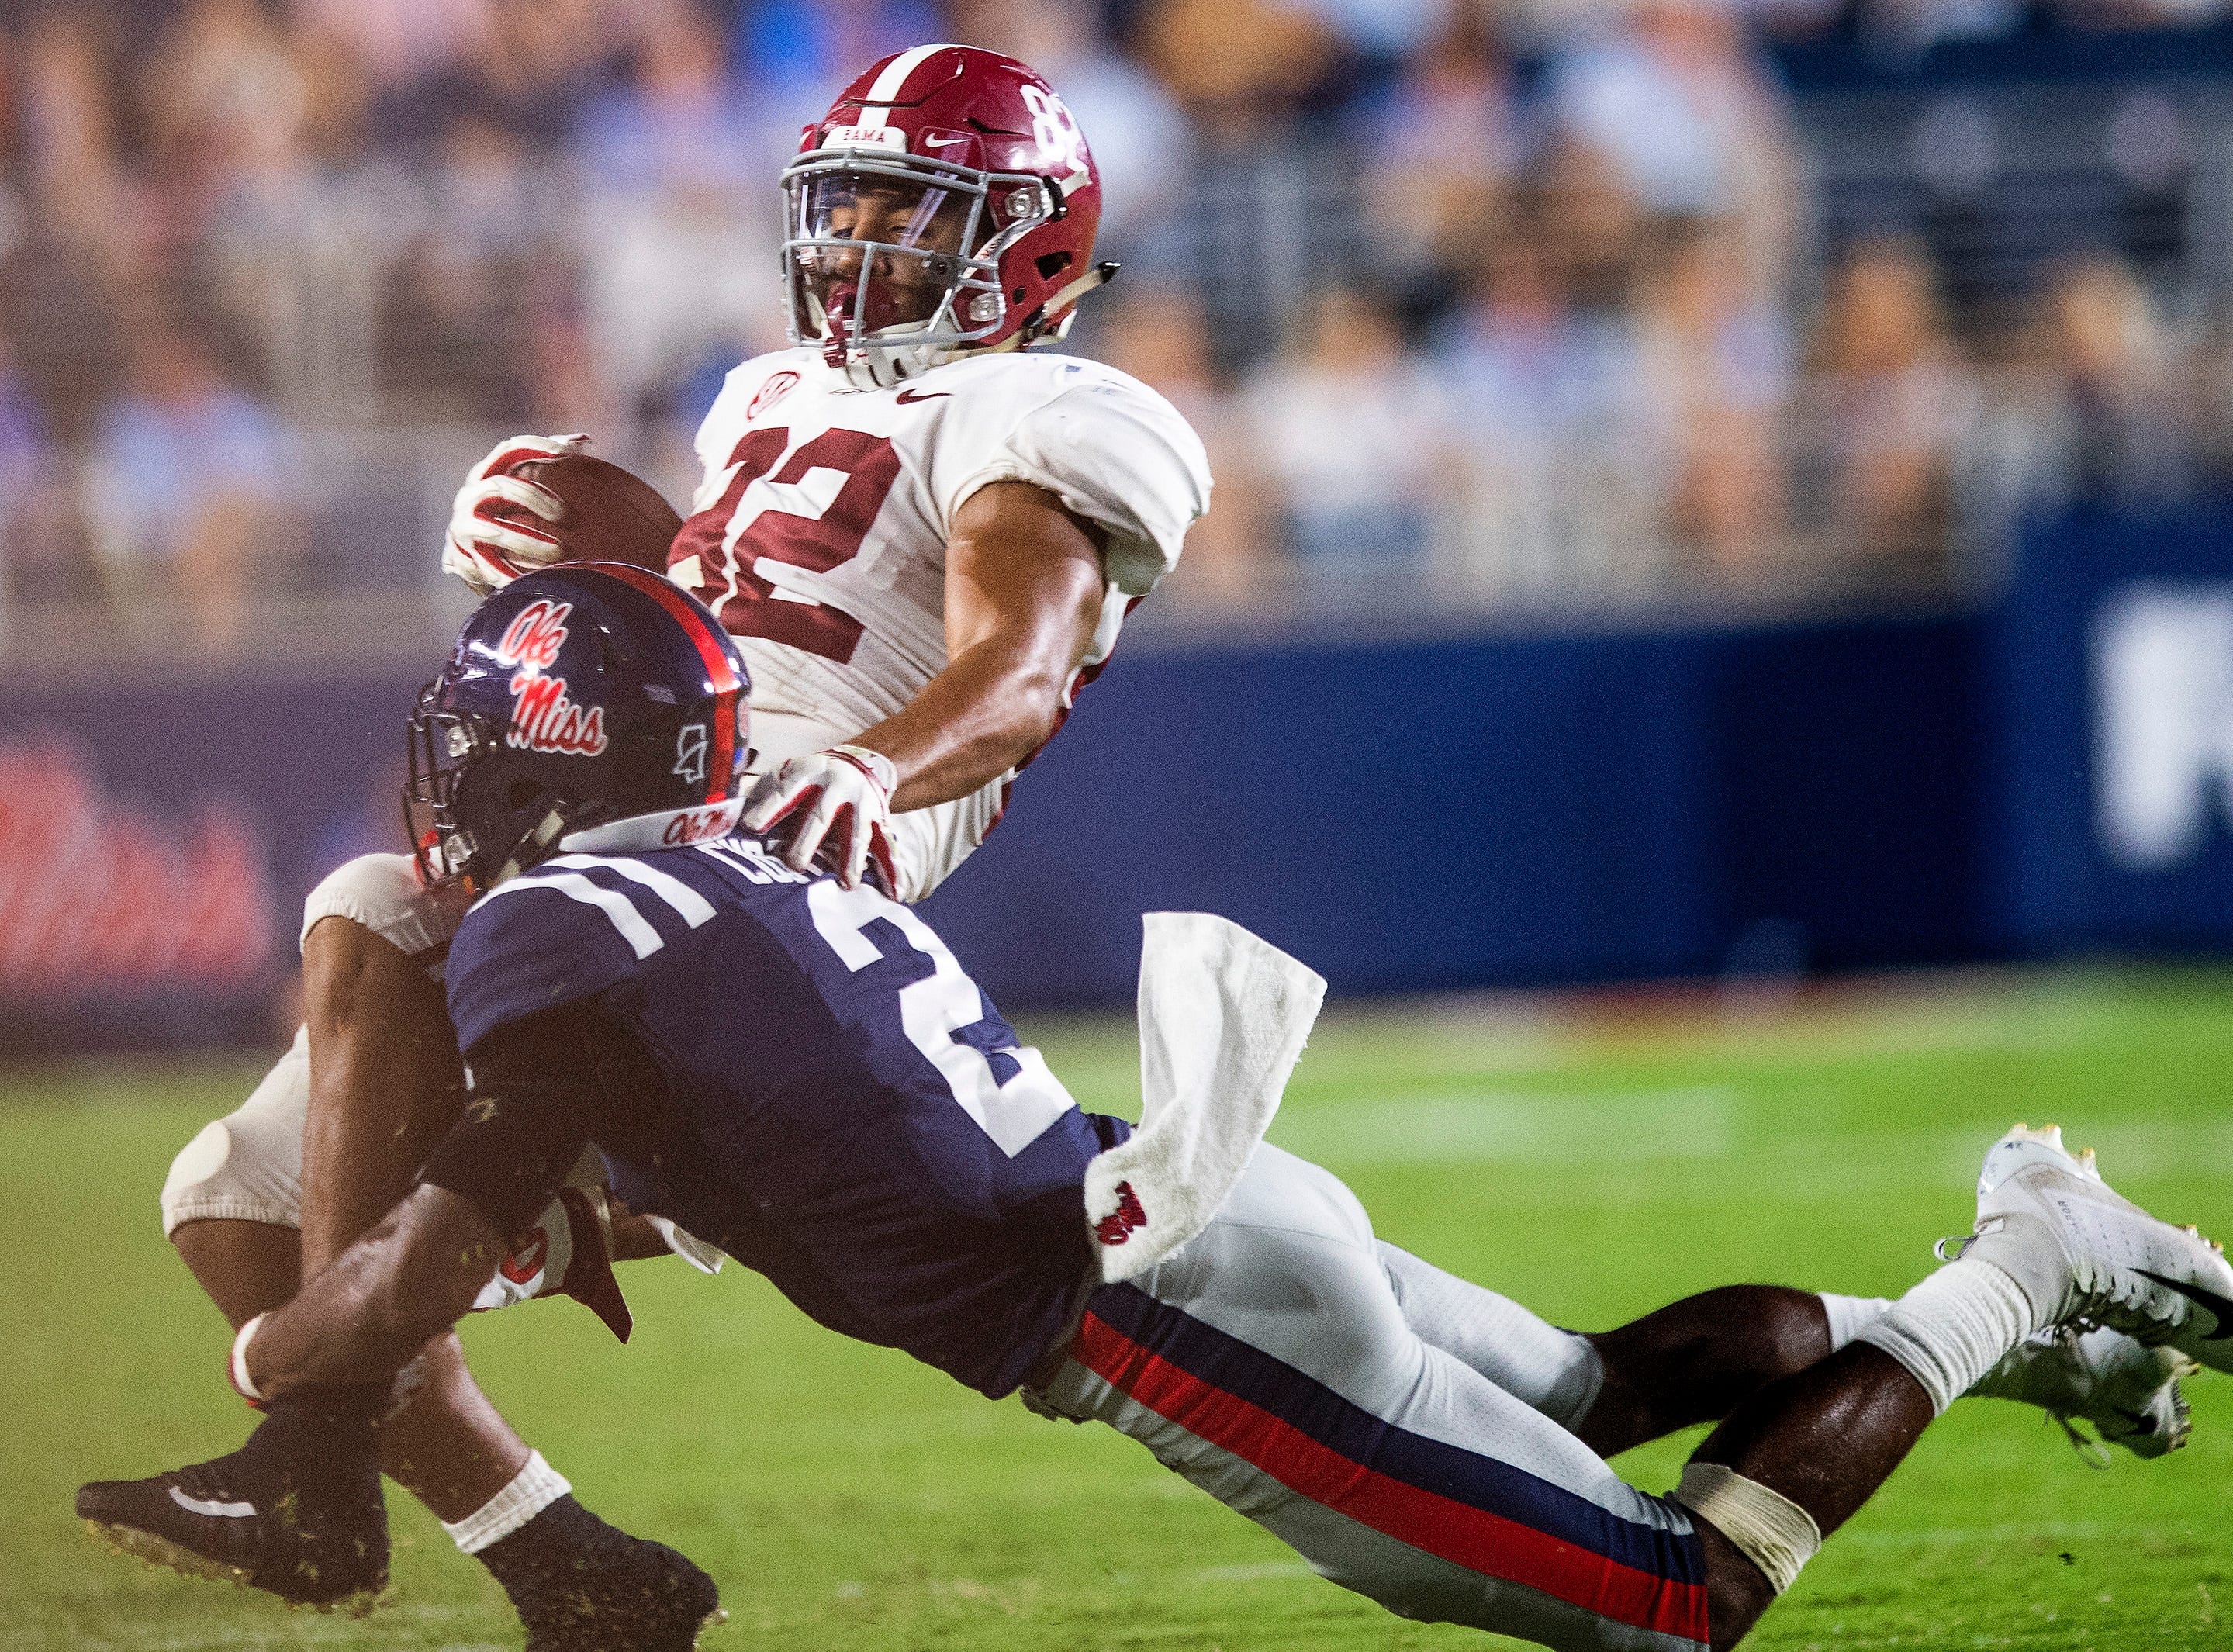 Ole Miss defensive back Montrell Custis (2)  tackles Alabama tight end Irv Smith Jr. (82) in first half action in Oxford, Ms., on Saturday September 15, 2018.